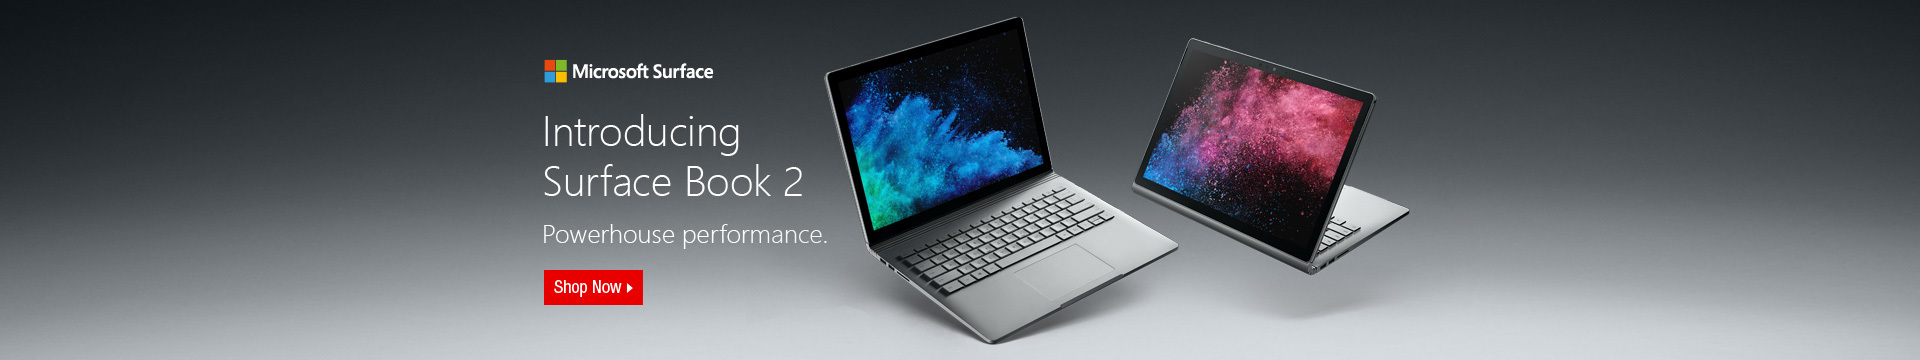 Introducing Surface Book 2